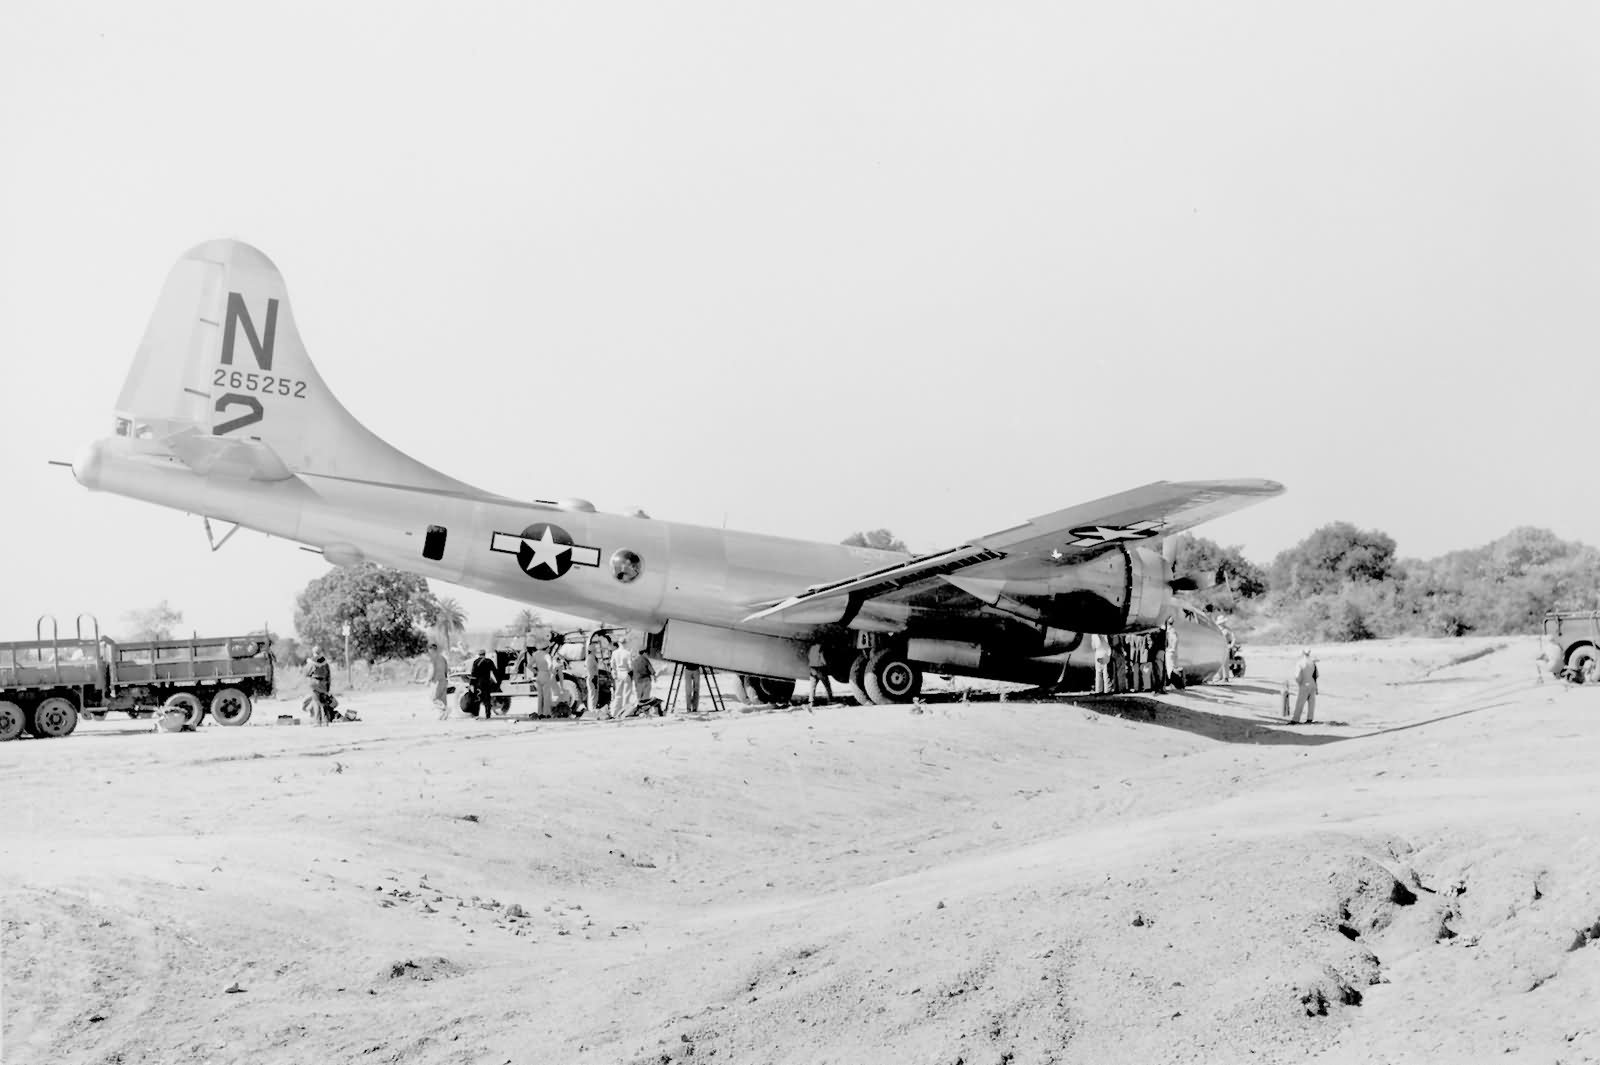 B-29 Superfortress in China January 1945 – 462nd Bomb Group 42-65252 N 2